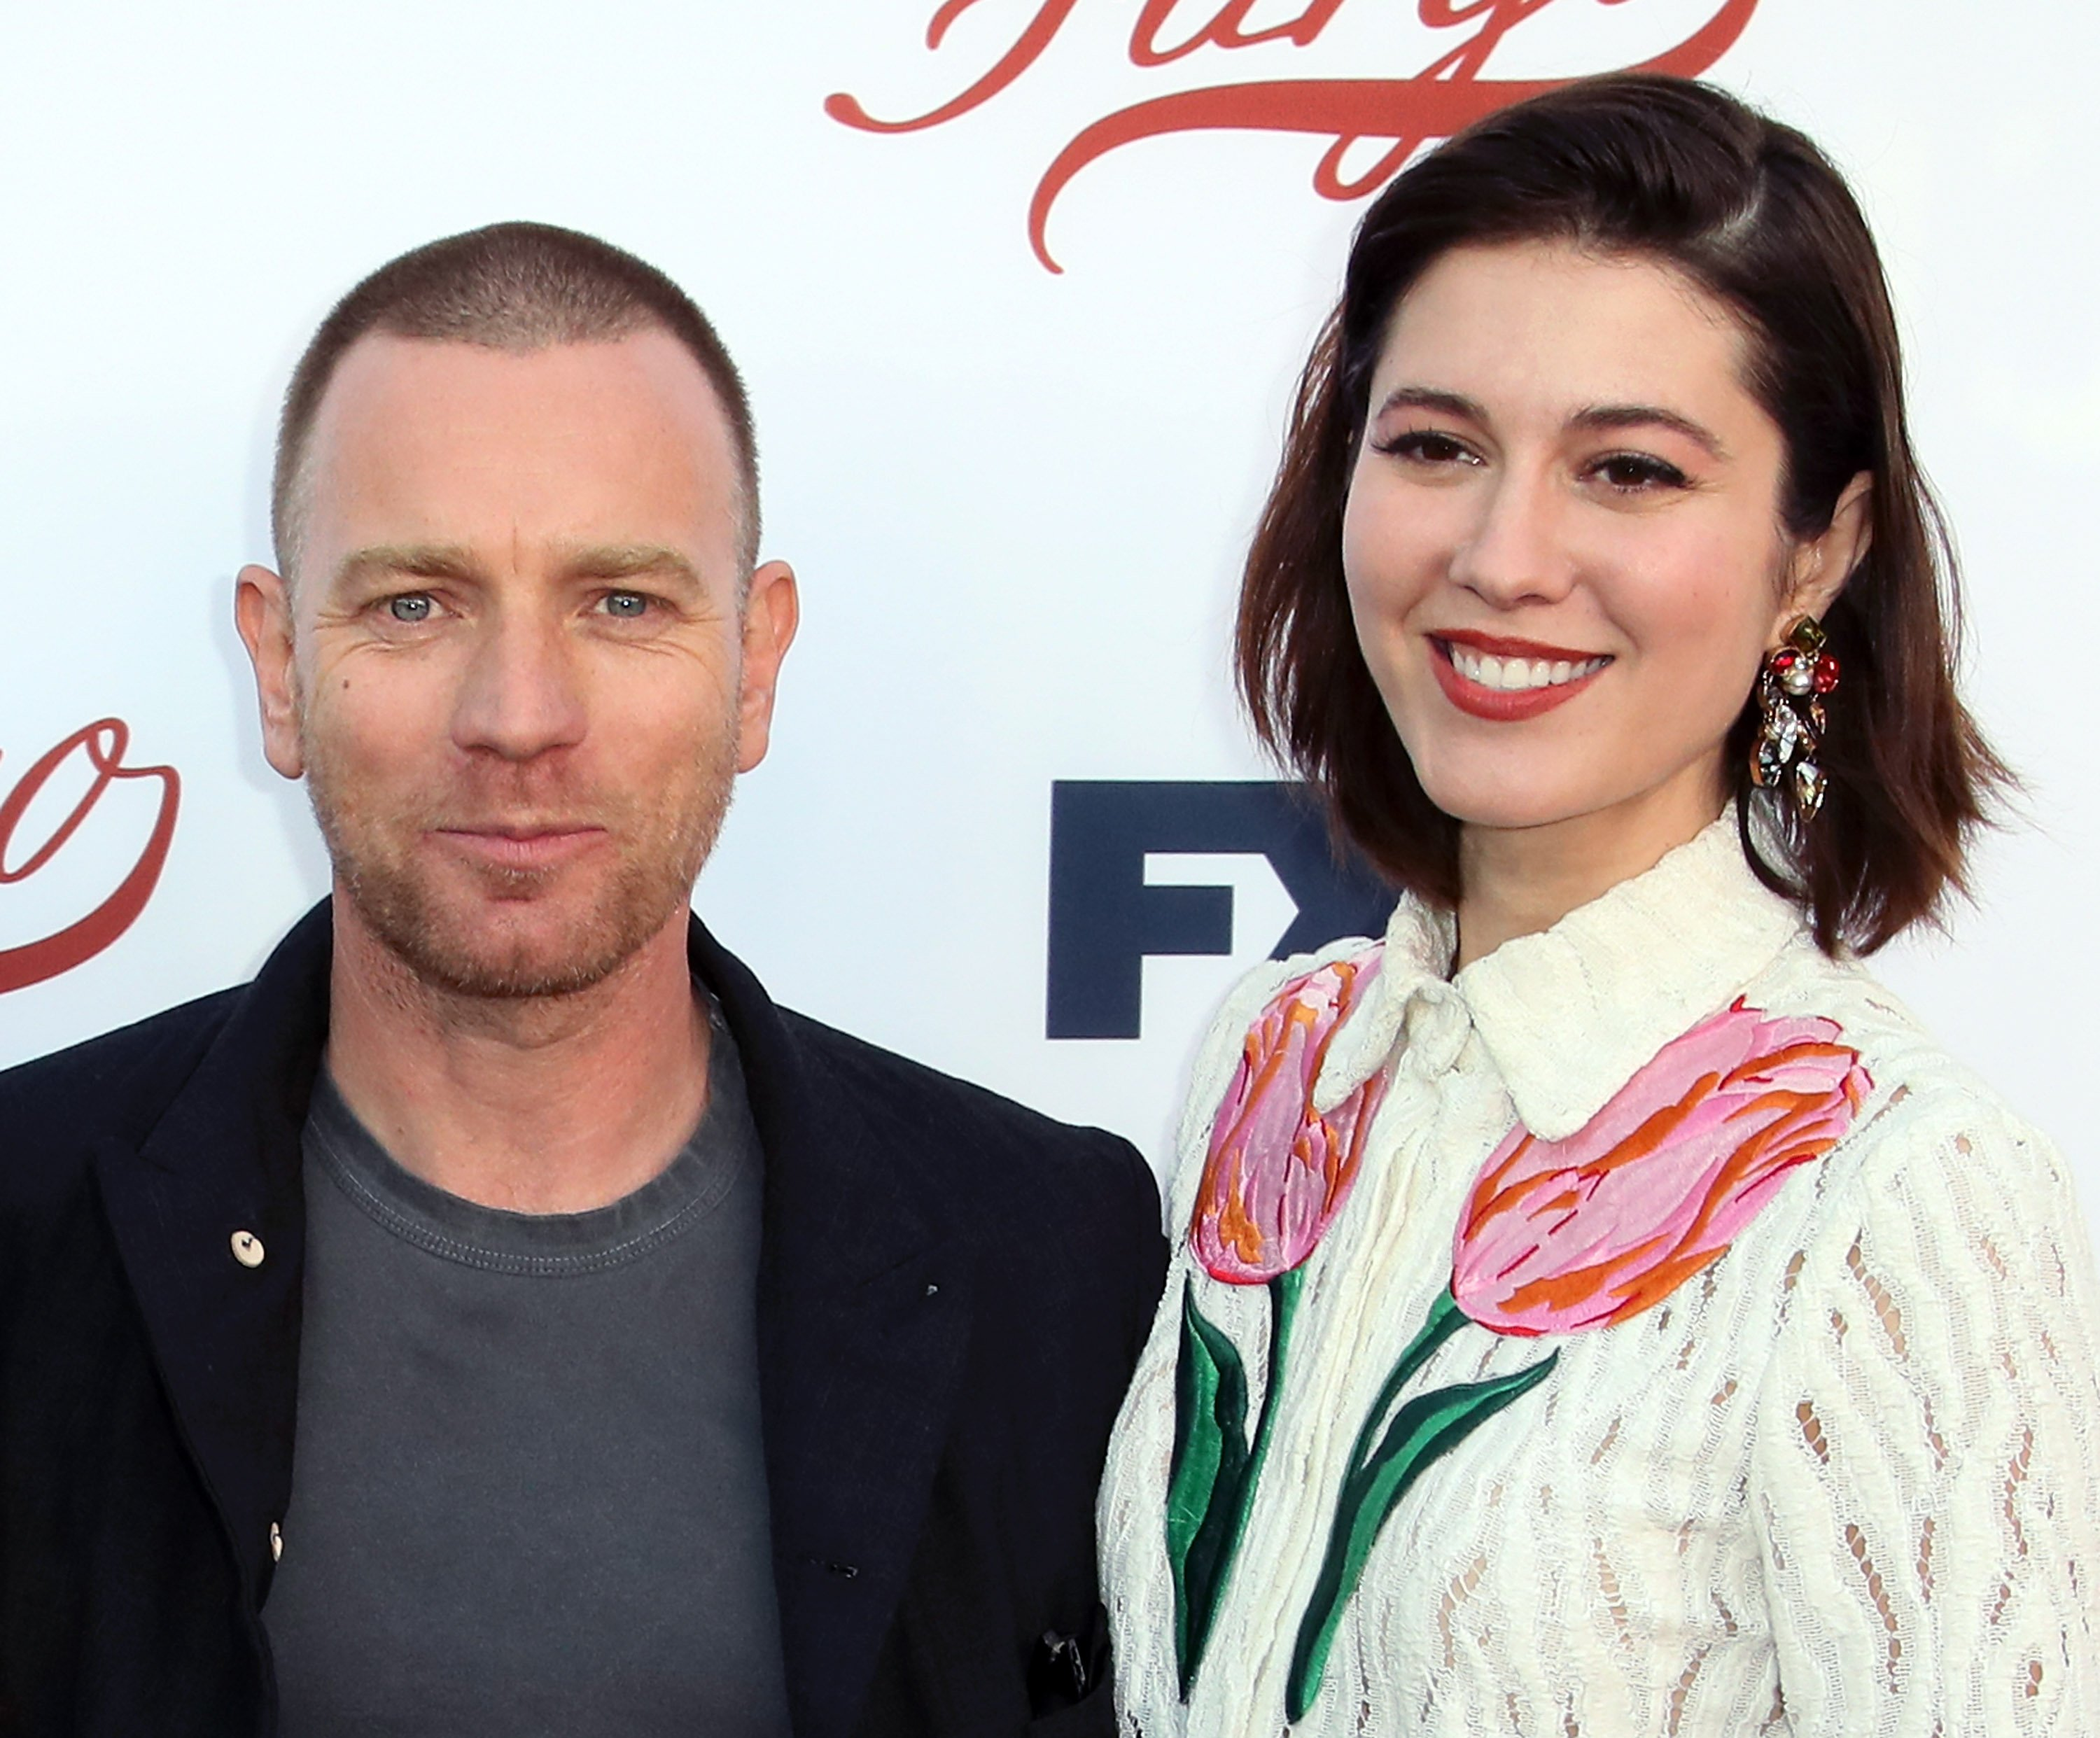 """Actors Ewan McGregor and Mary Elizabeth Winstead attend FX's """"Fargo"""" For Your Consideration event at Saban Media Center on May 11, 2017 in North Hollywood, California 